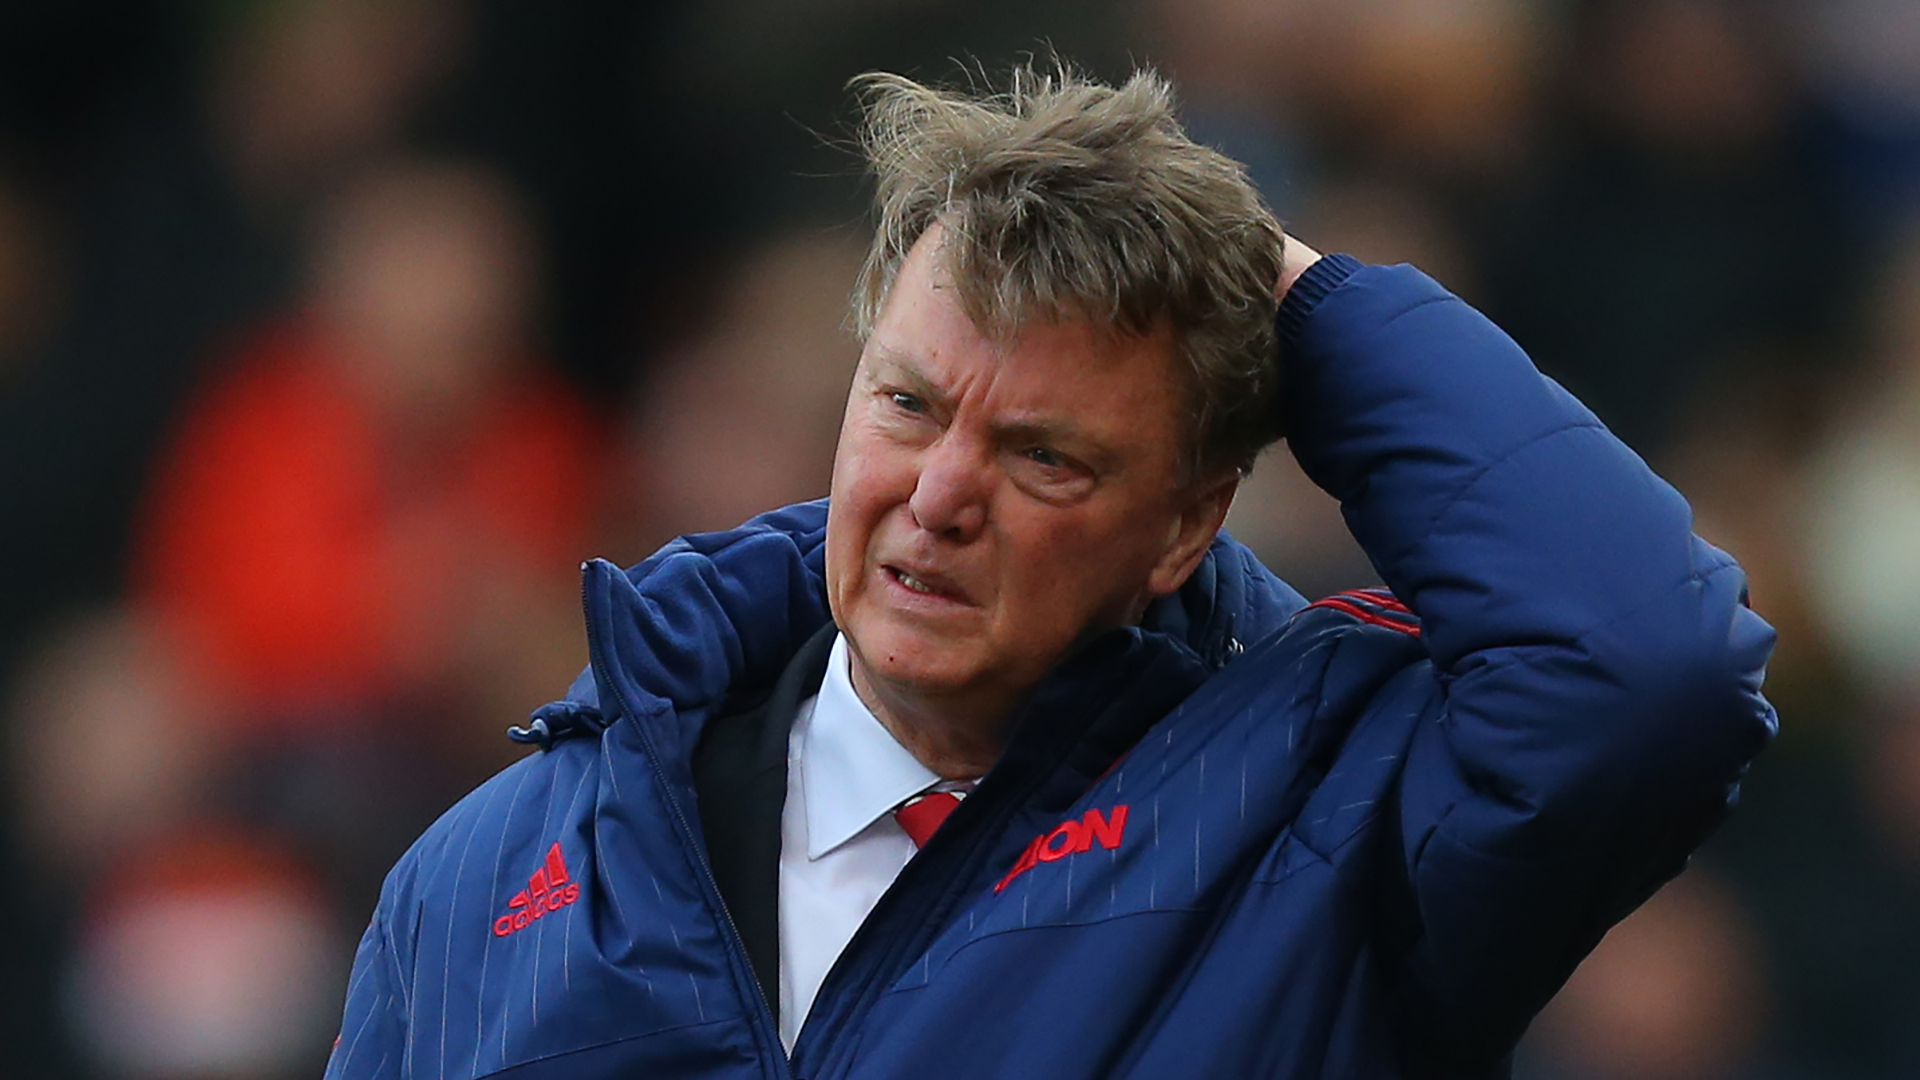 Van Gaal slams Man Utd's transfer strategy: A turnover of £600m and can't buy the players you need!